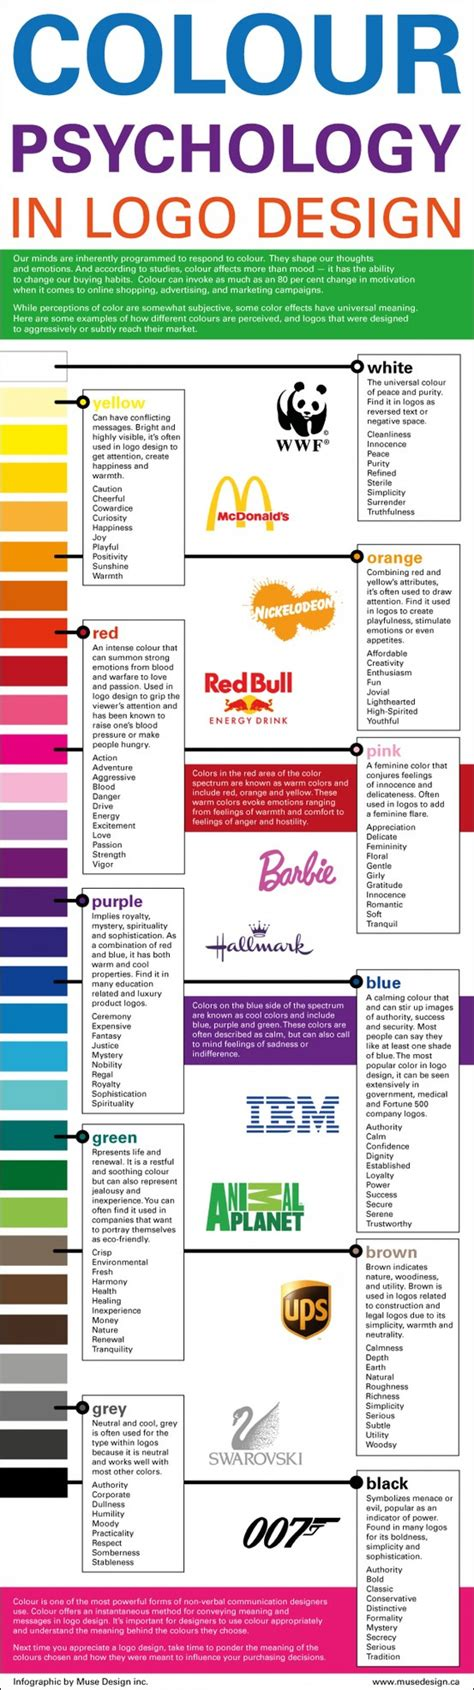 effects of color color psychology in logo design visual ly